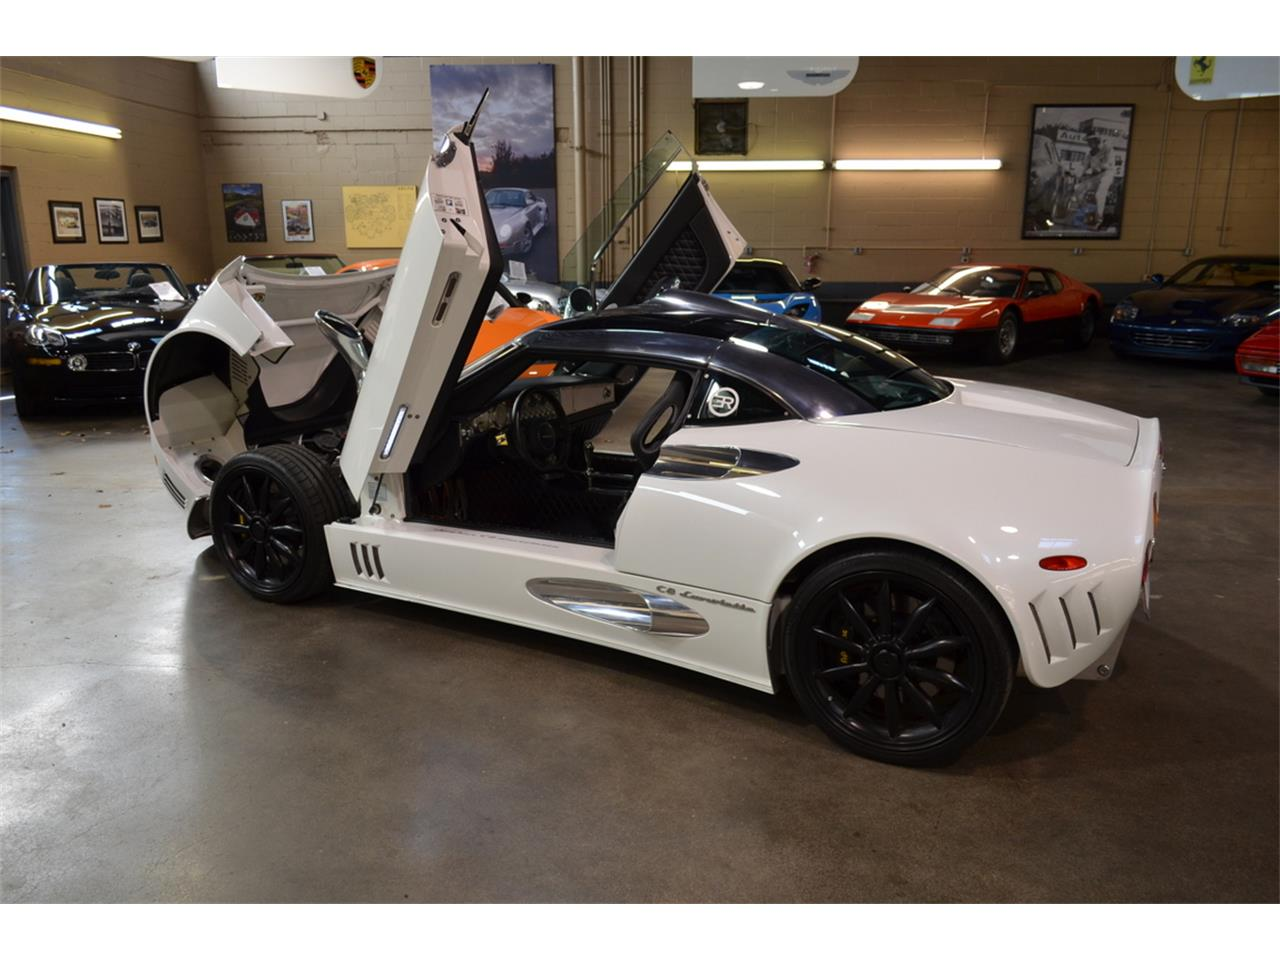 2010 Spyker C8 for sale in Huntington Station, NY – photo 14